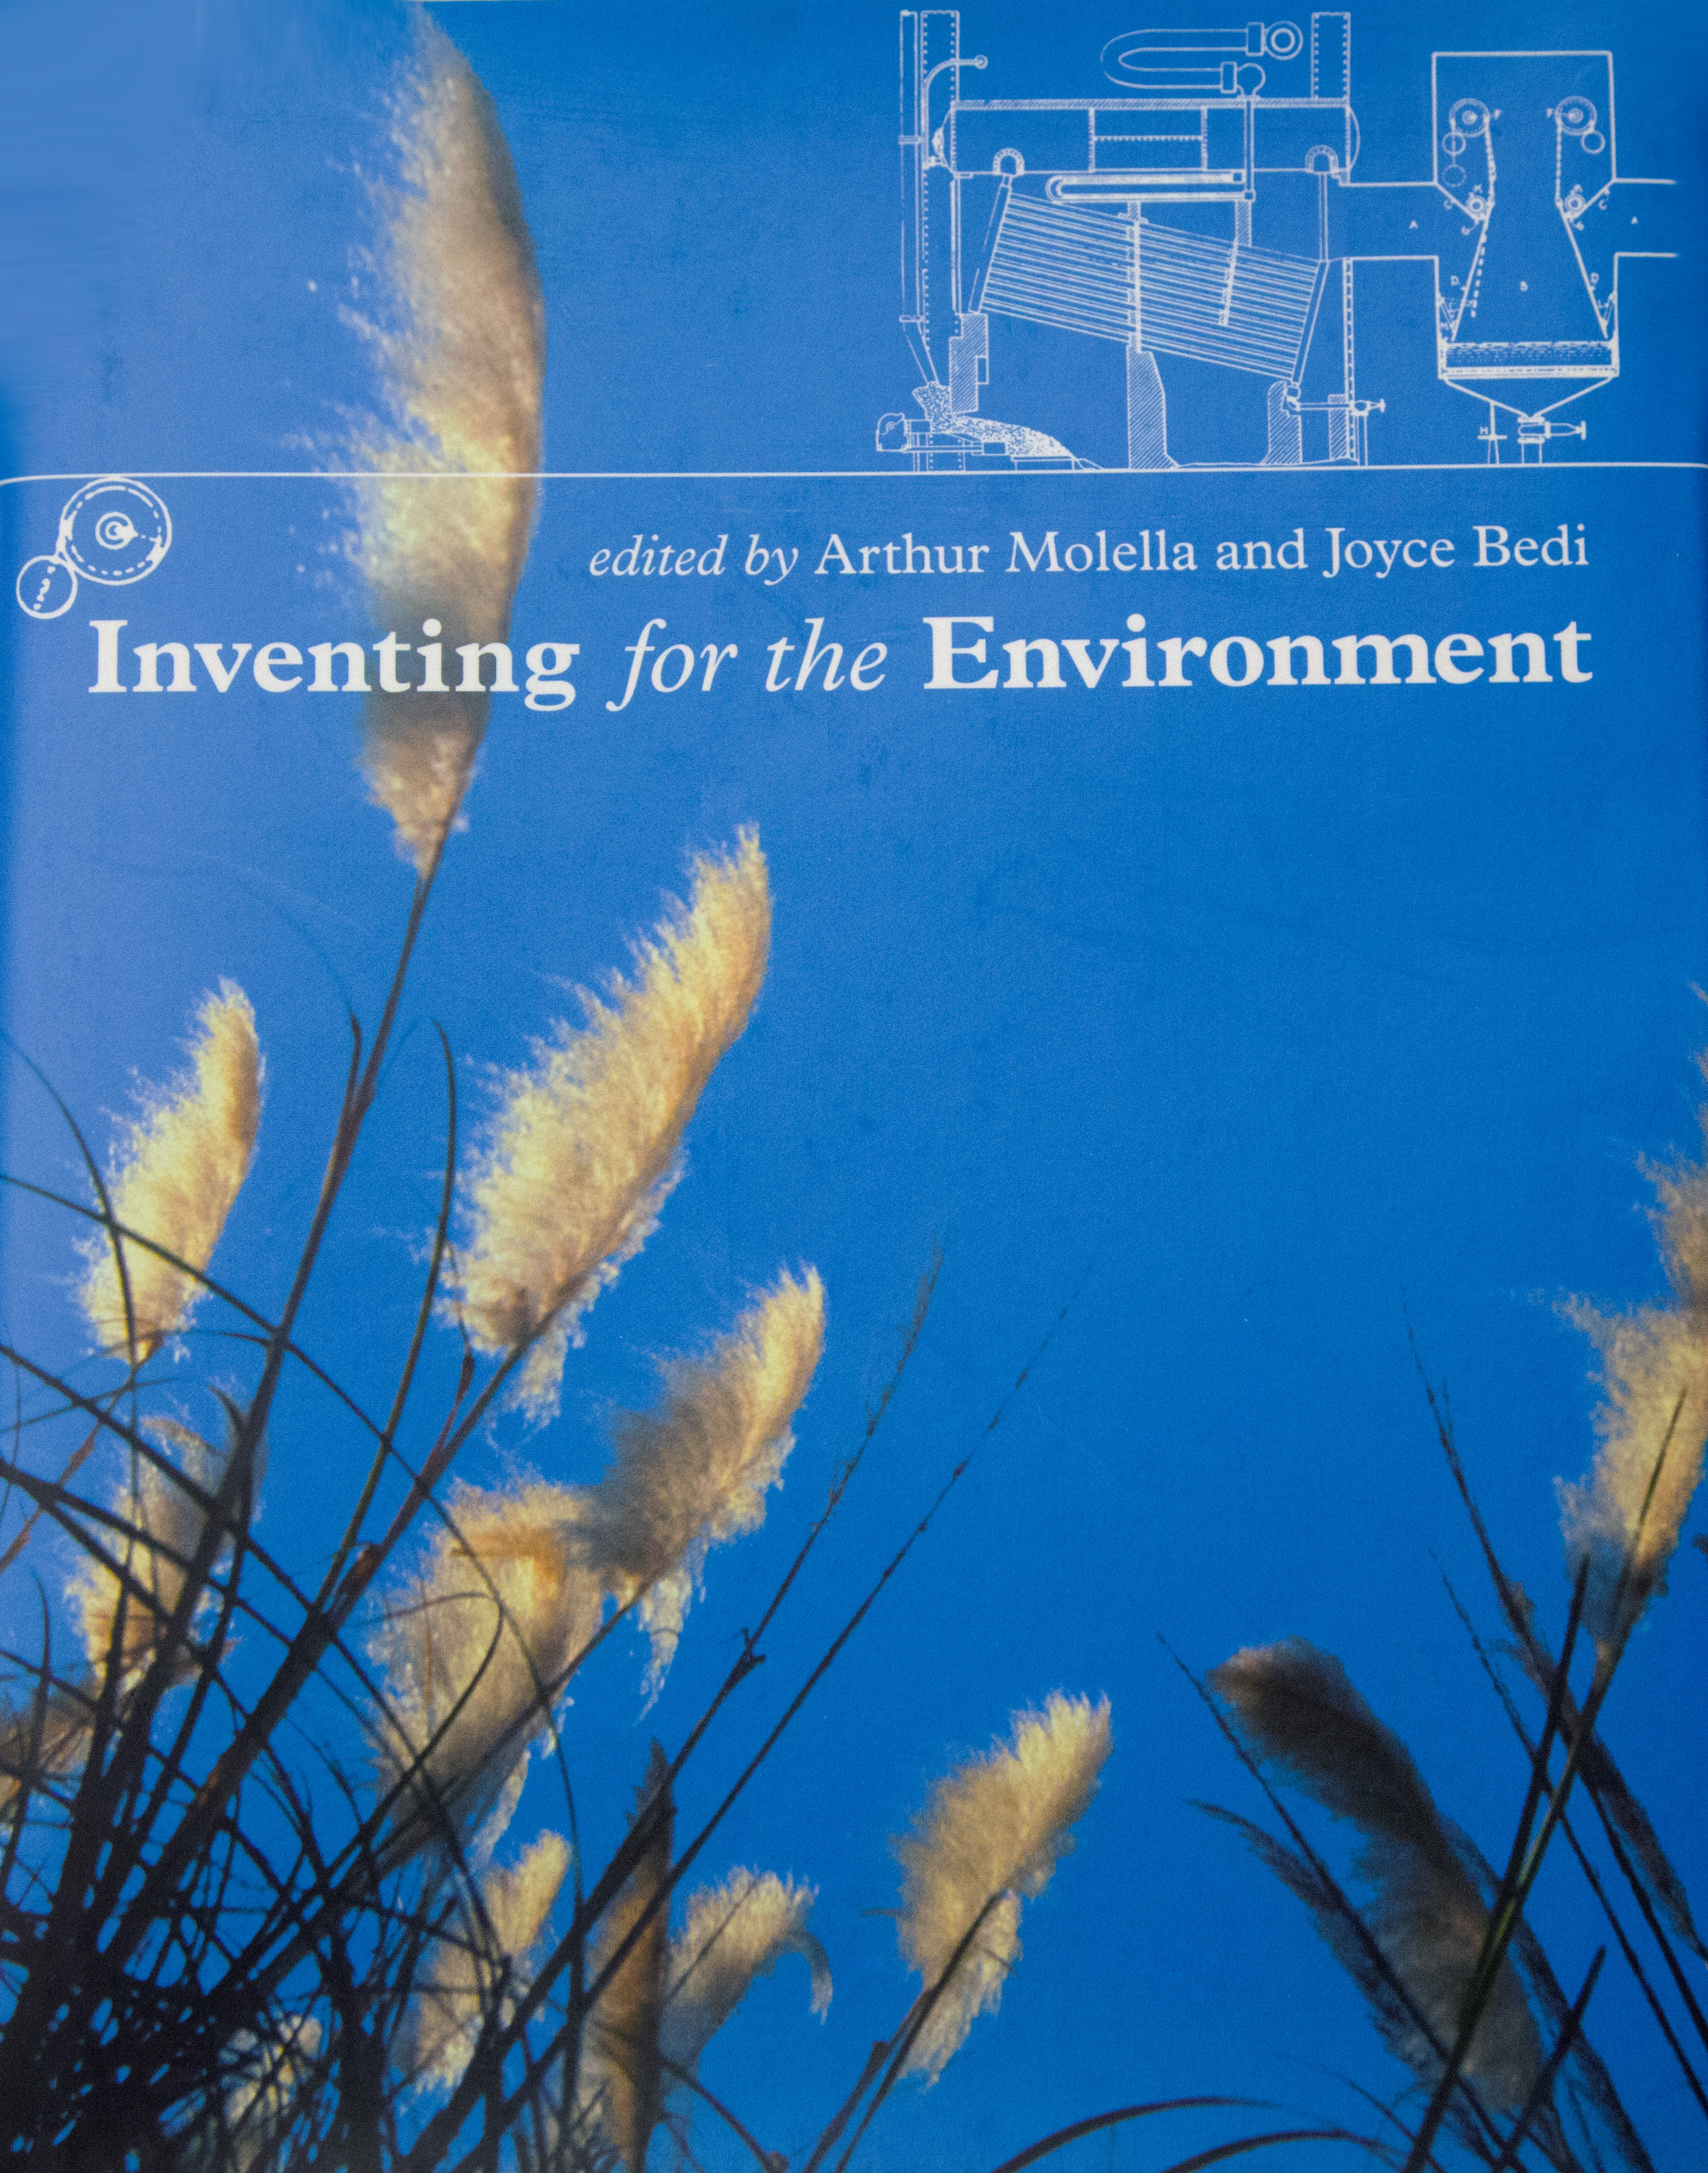 Image of book cover - Inventing for the Environment